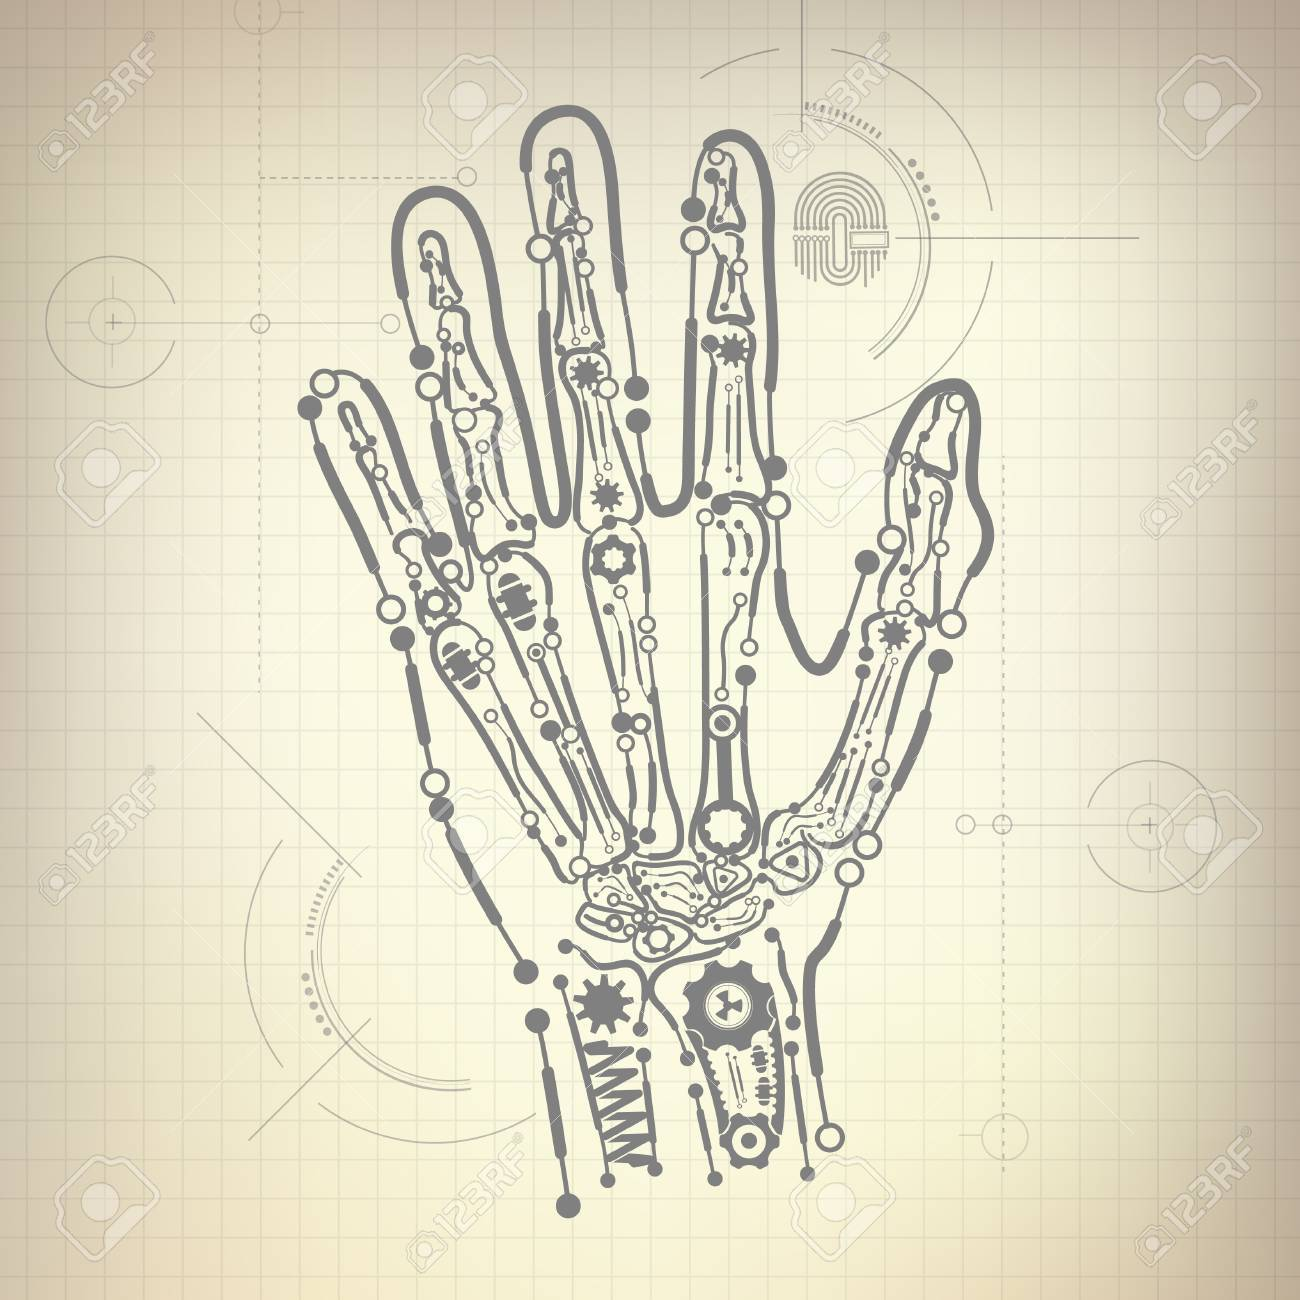 concept of blueprint of a i invention, robot hand and bone diagram